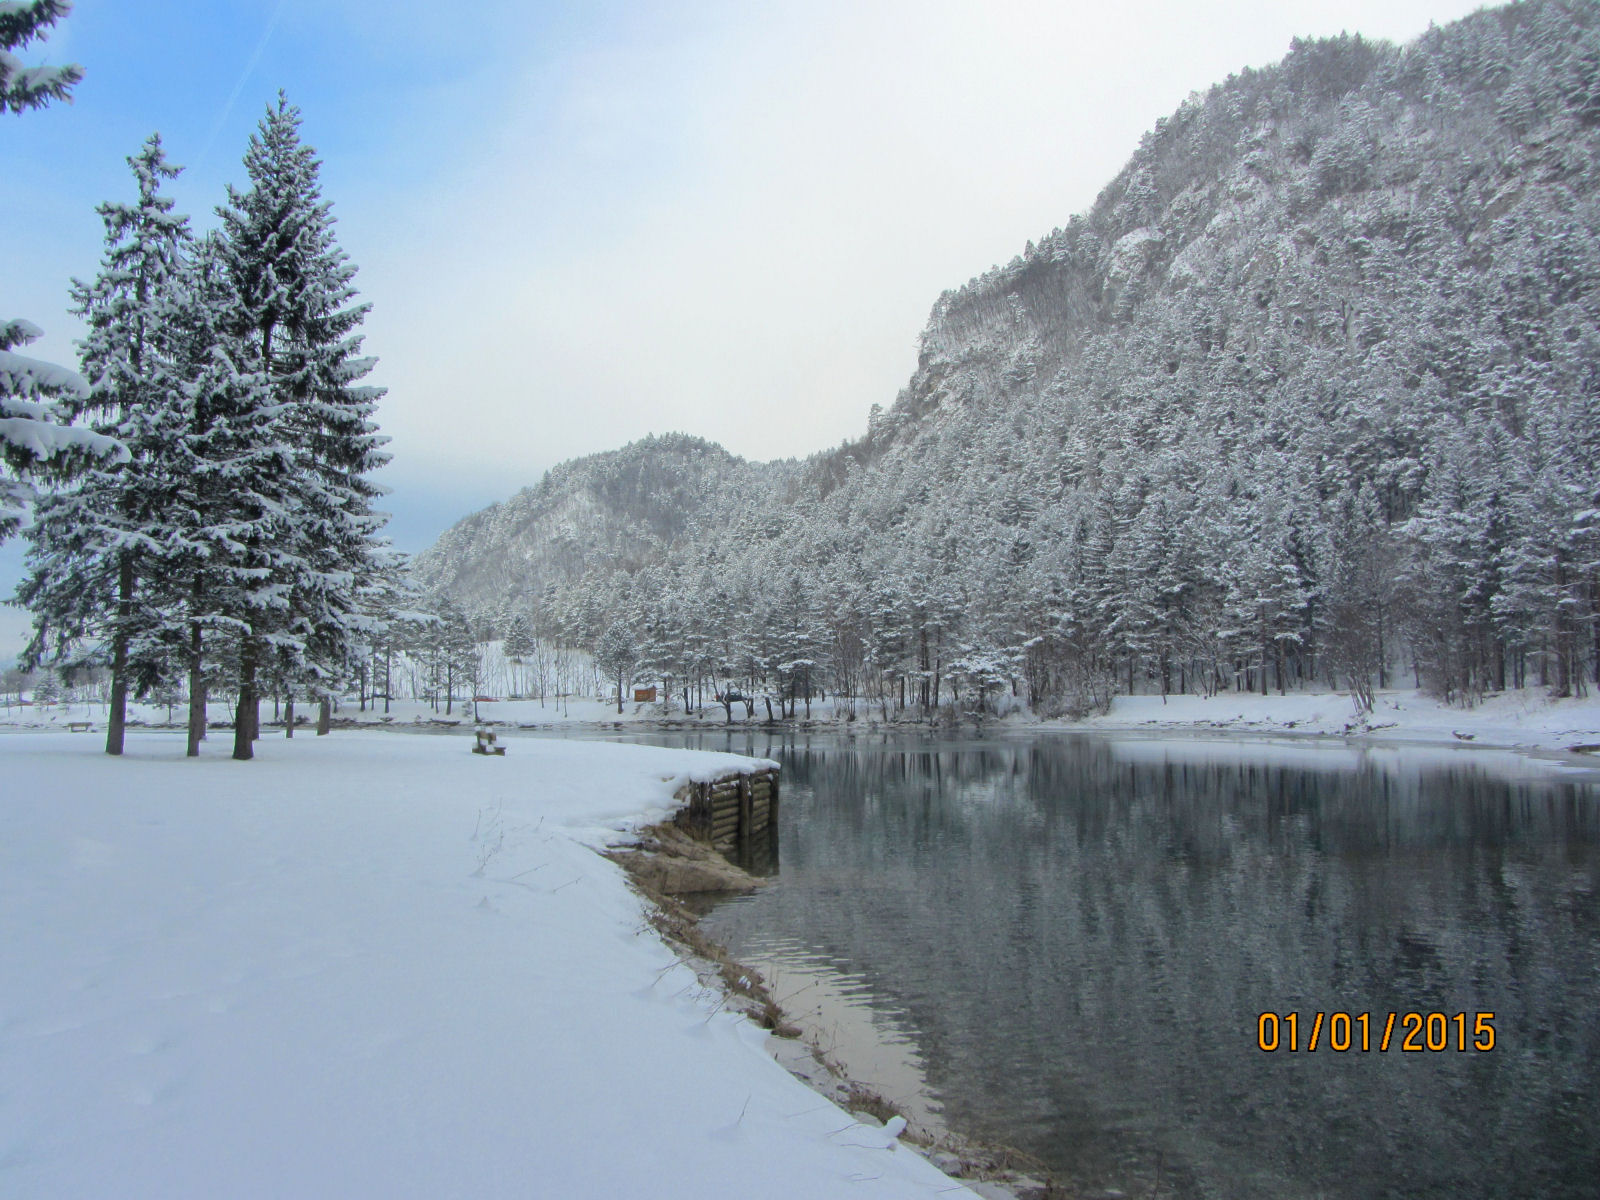 Winter fairytale in Gorenjska, Slovenia